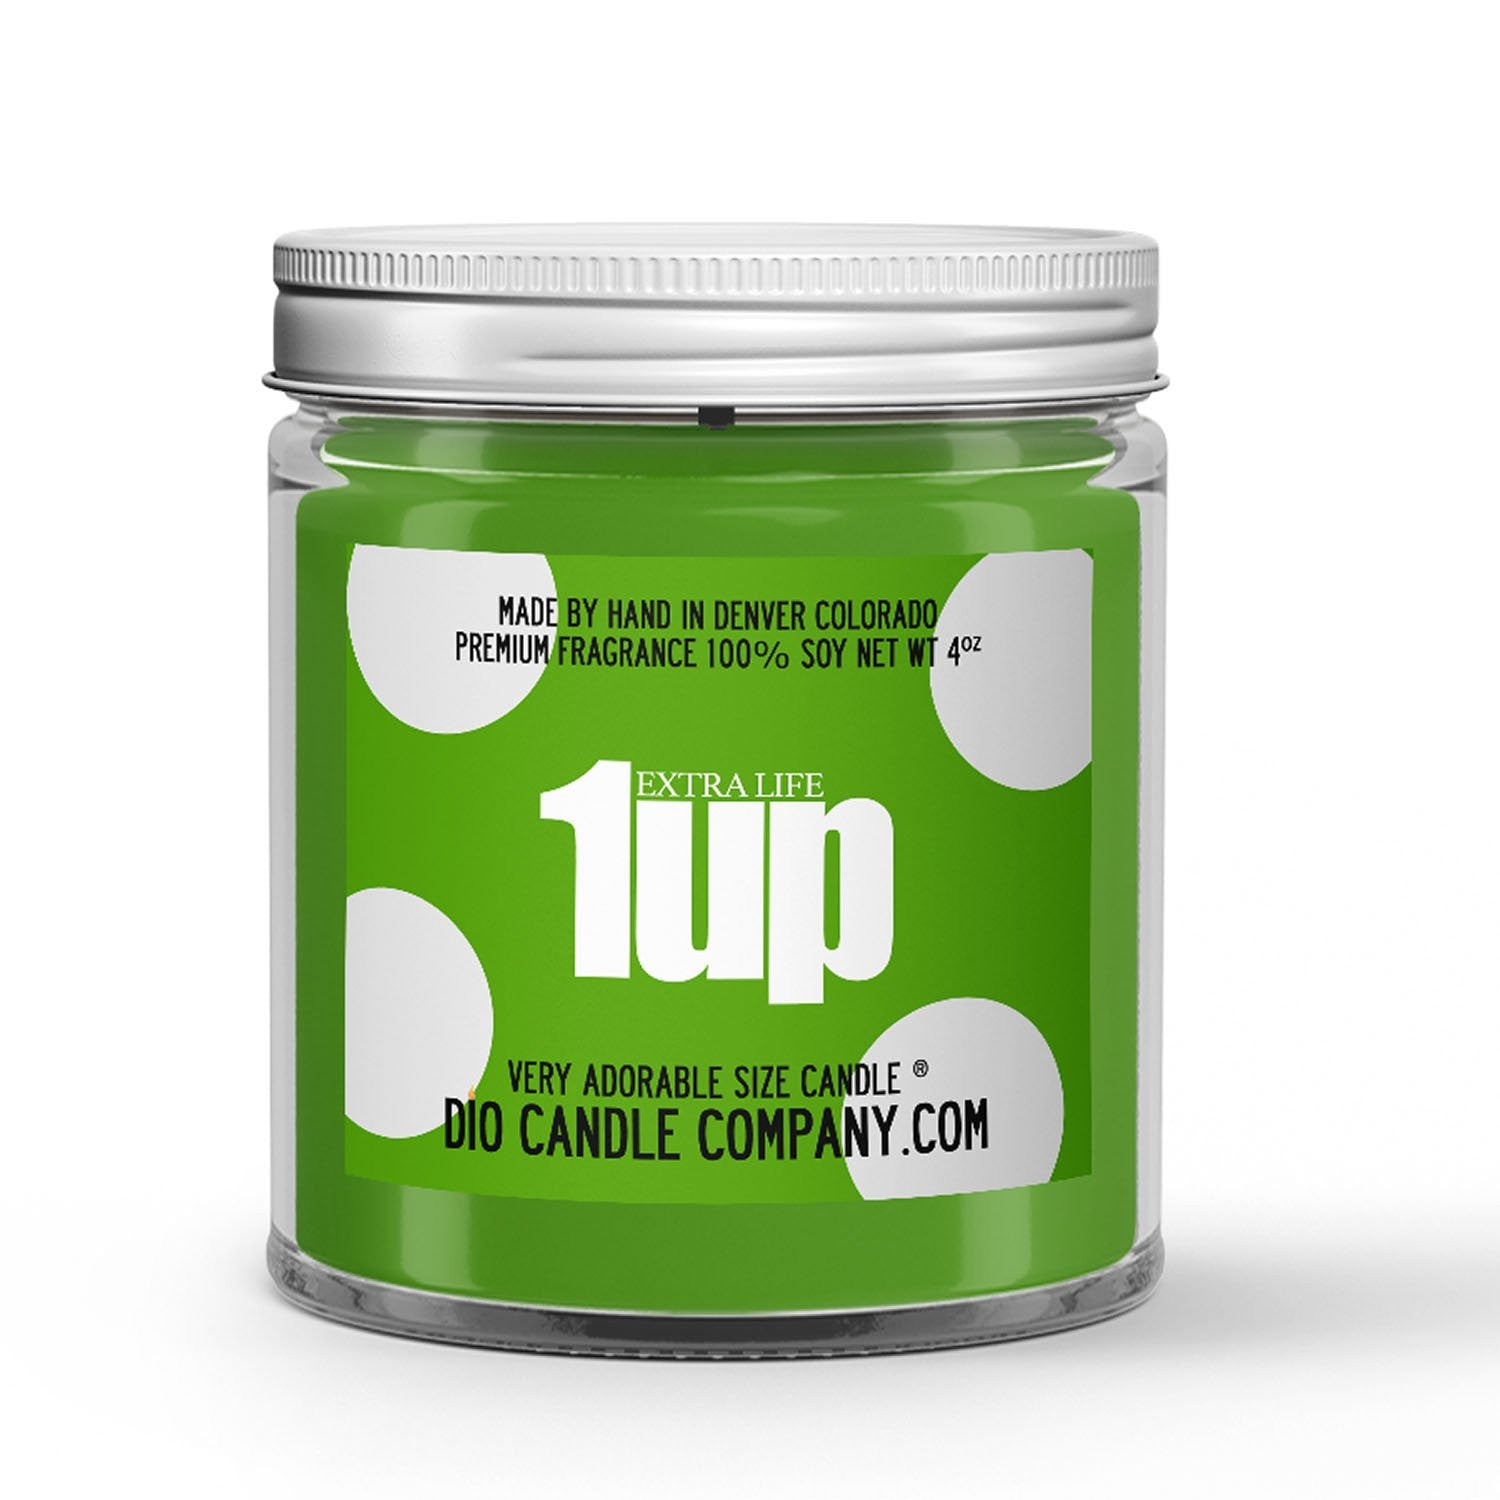 1 Up Extra Life Candle - Banana - Grapefruit - 4oz Very Adorable Size Candle® - Dio Candle Company